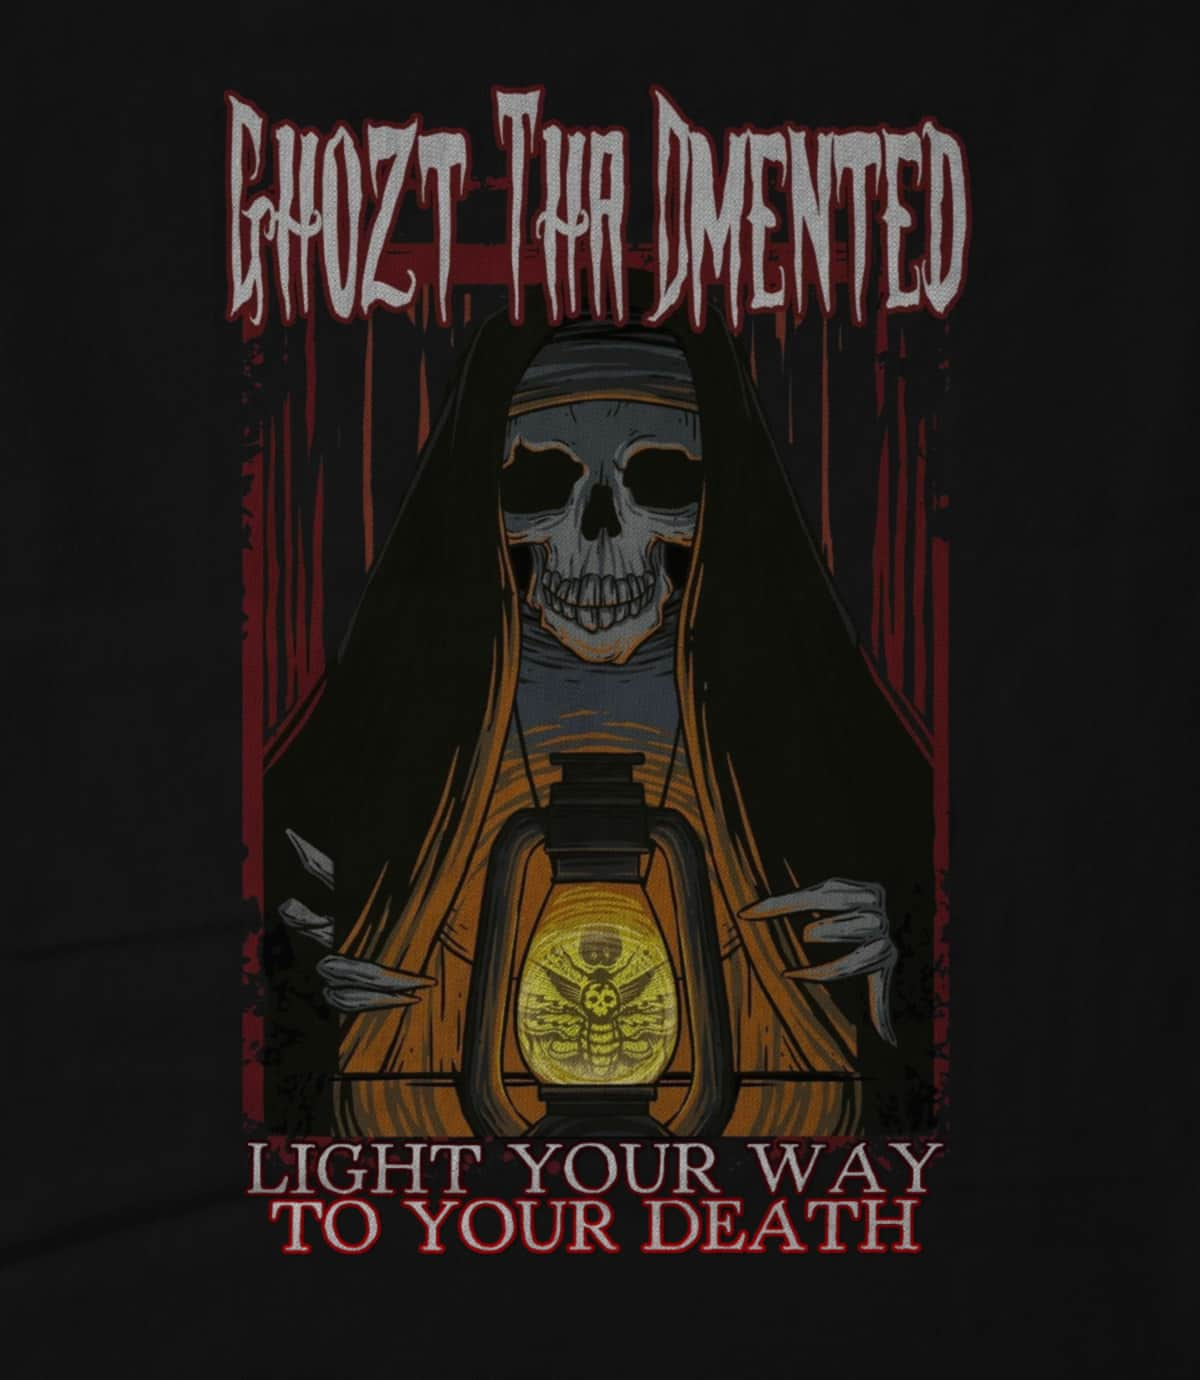 Ghozt tha dmented light your way 1595802463